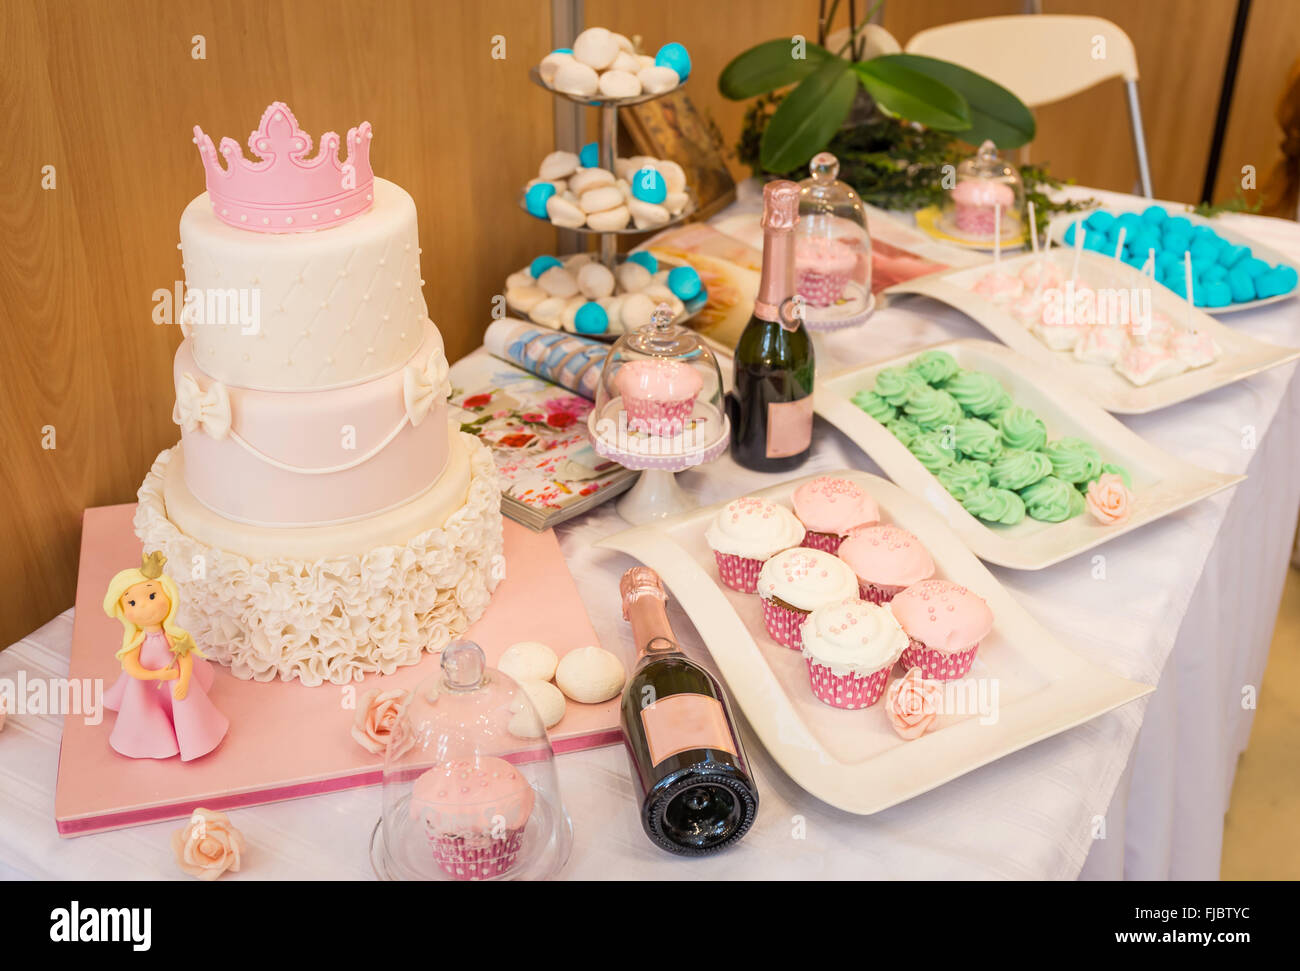 christening decorated table with cakes and sweets - Stock Image